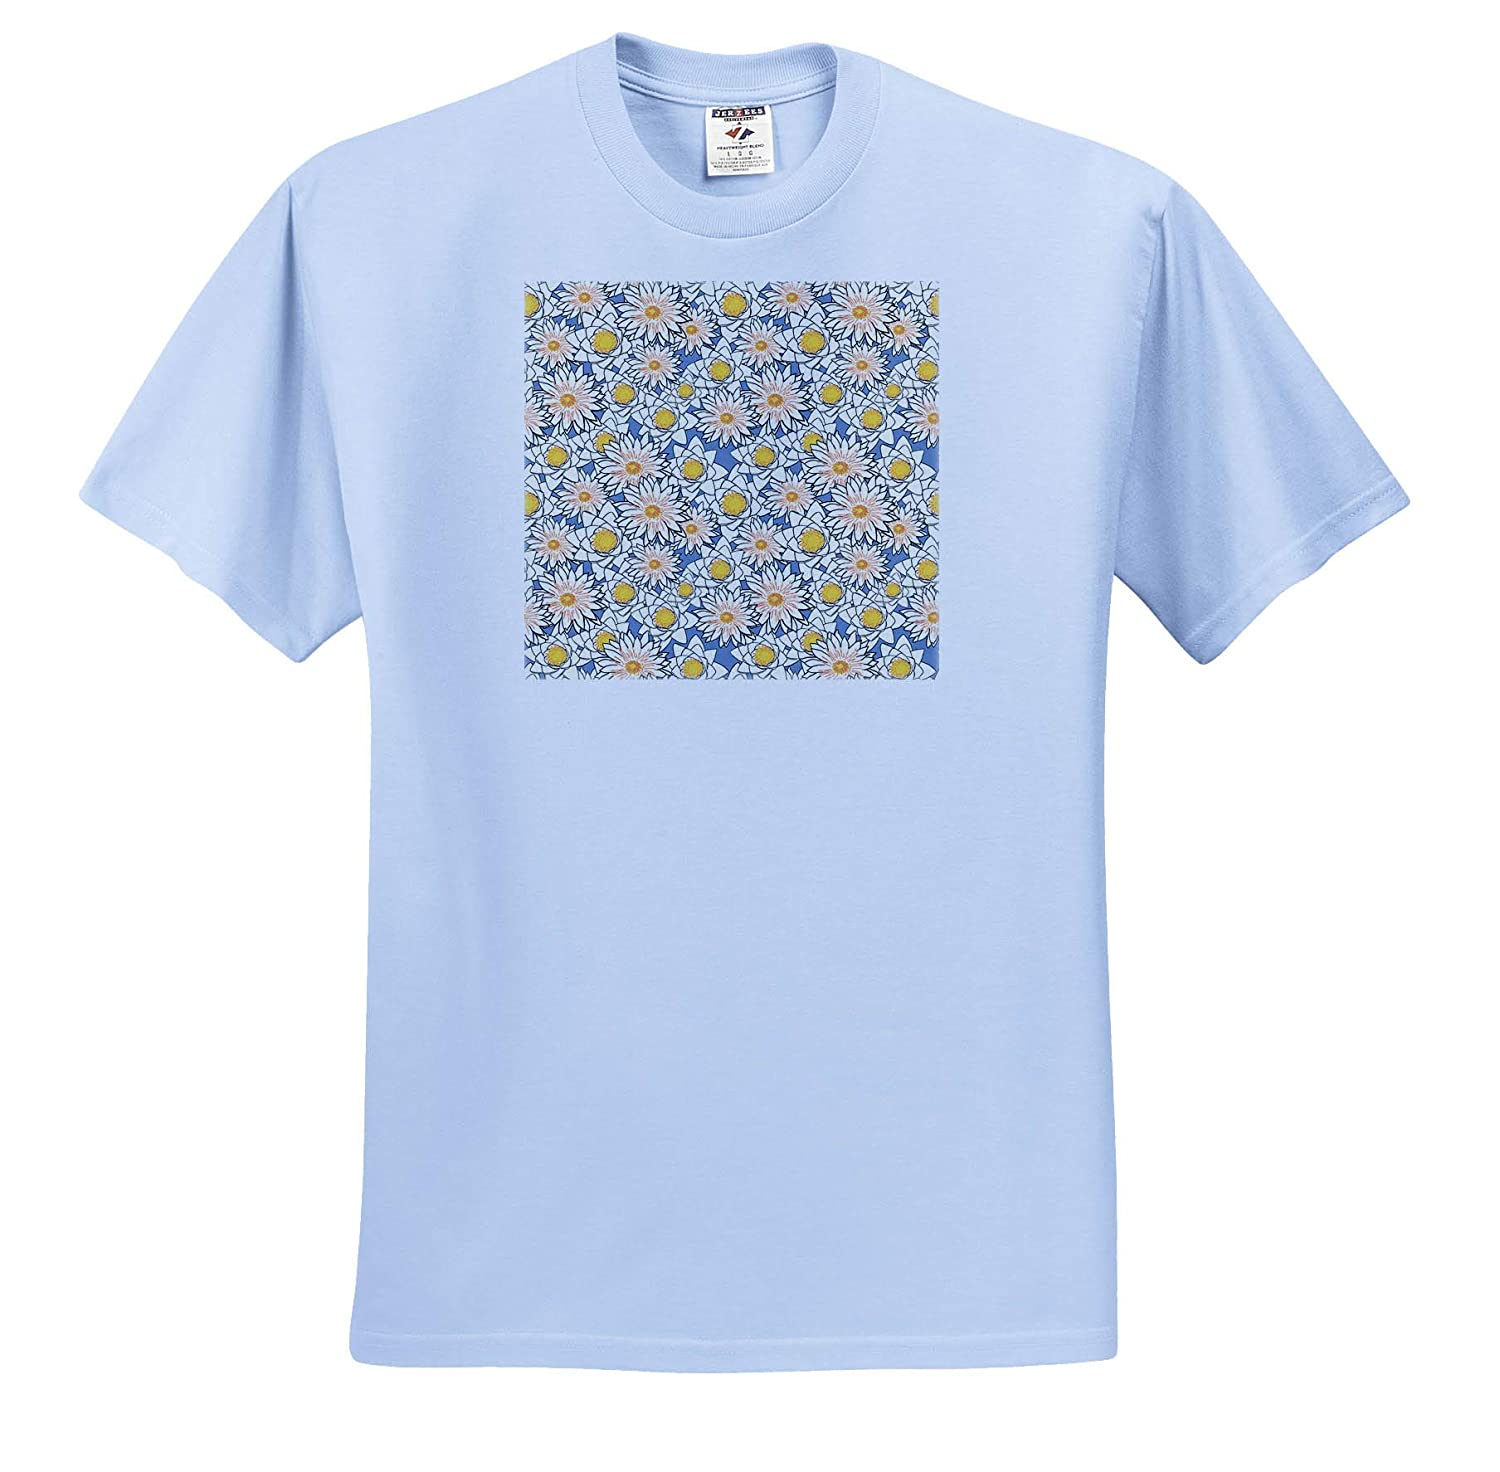 Pattern Floral Yellow Water Lily Flowers on Blue T-Shirts Cheerful Pattern of White 3dRose Alexis Design